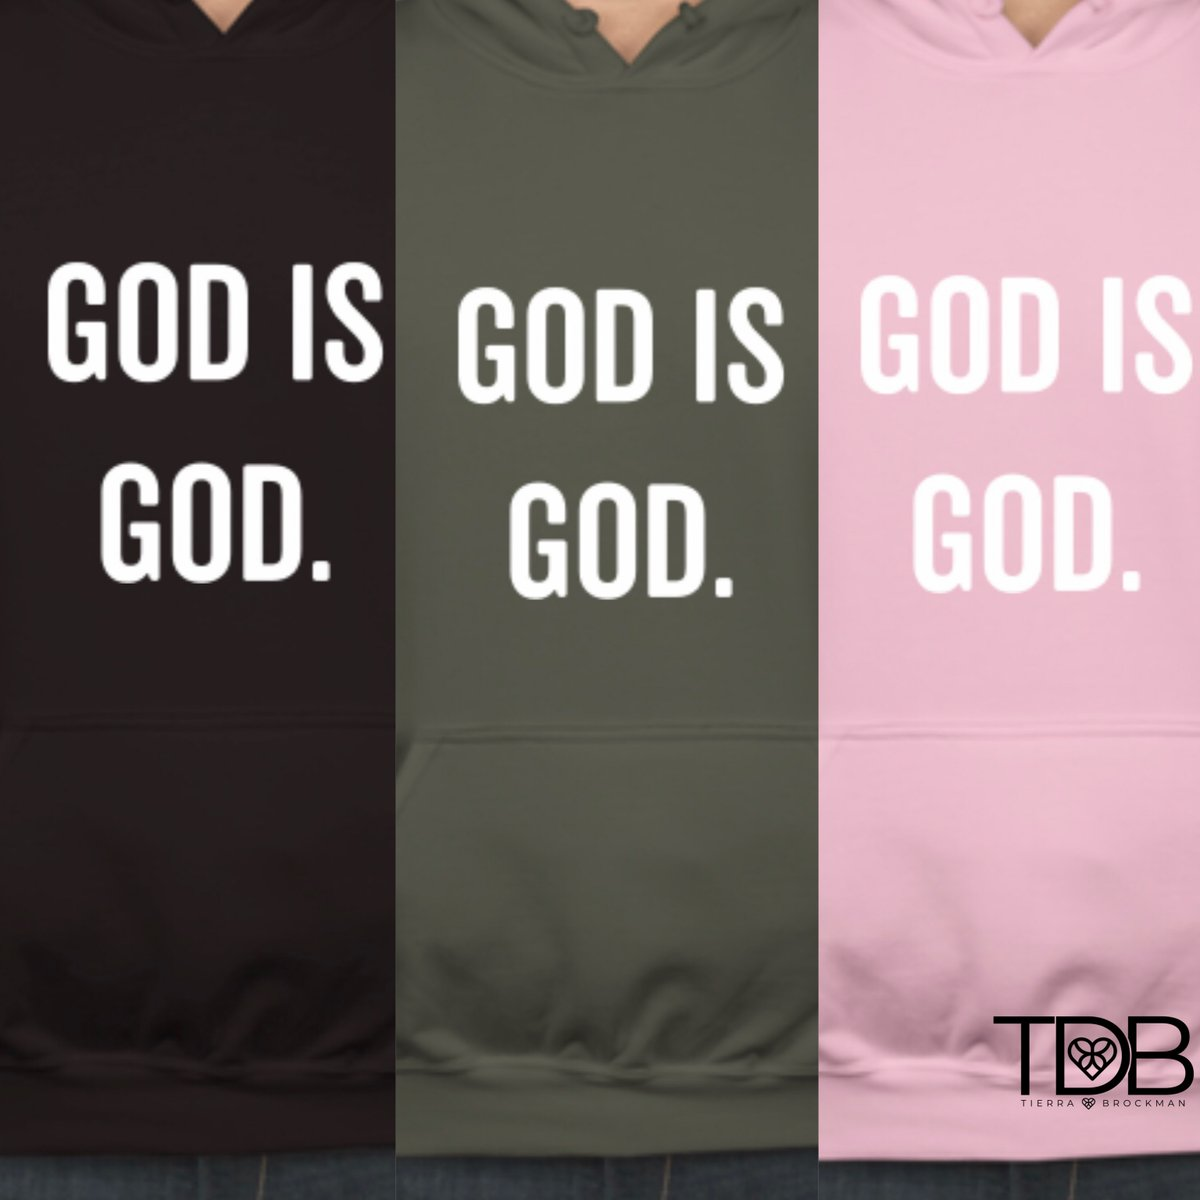 Today's the big day! 😭🙌🏾 Which one did you order?  🖤💗💚😁  Our Hoodies are officially be available!💃🏾  Order yours Now at https://t.co/rAMqO7IyPa  #SoExcited #HappyFriday #NewMerch #Hoodie #GodisGod #TierraB #JesusGirl #GetYours https://t.co/ojq5MbbaKE